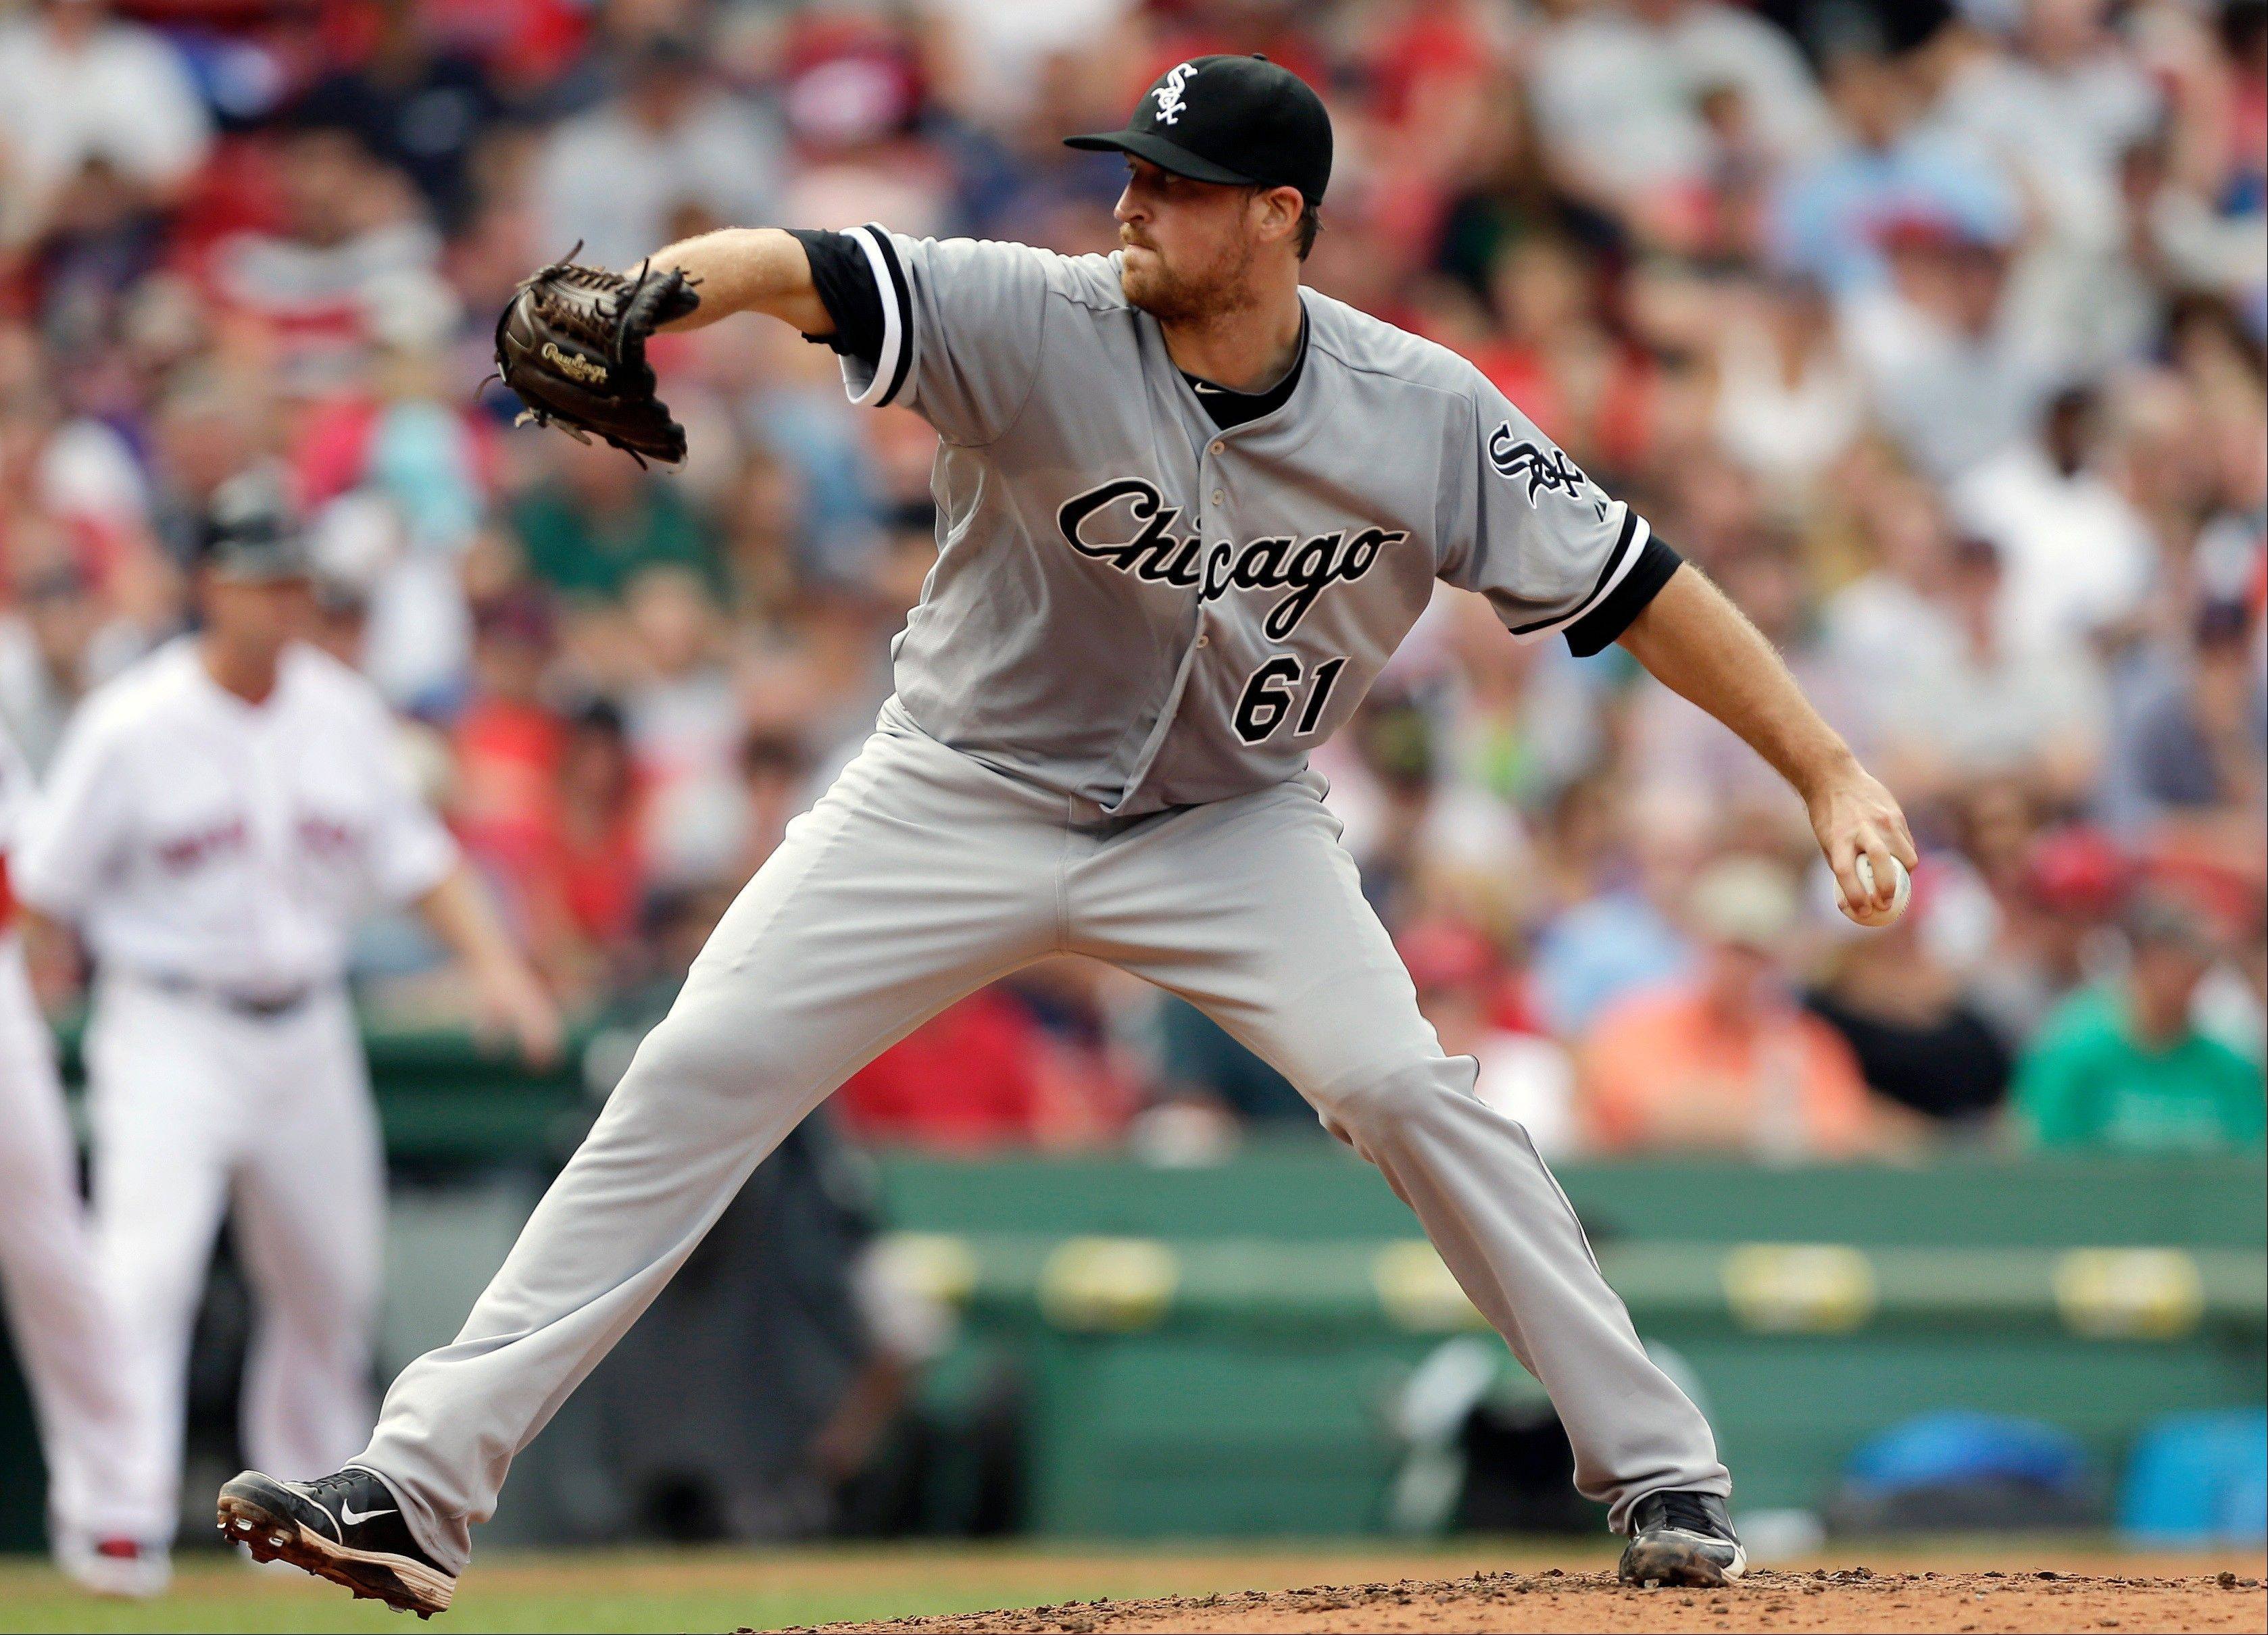 Charlie Leesman, who bailed out White Sox starter Andre Rienzo on Sunday, could be a strong candidate to fill the role of long reliever next season.